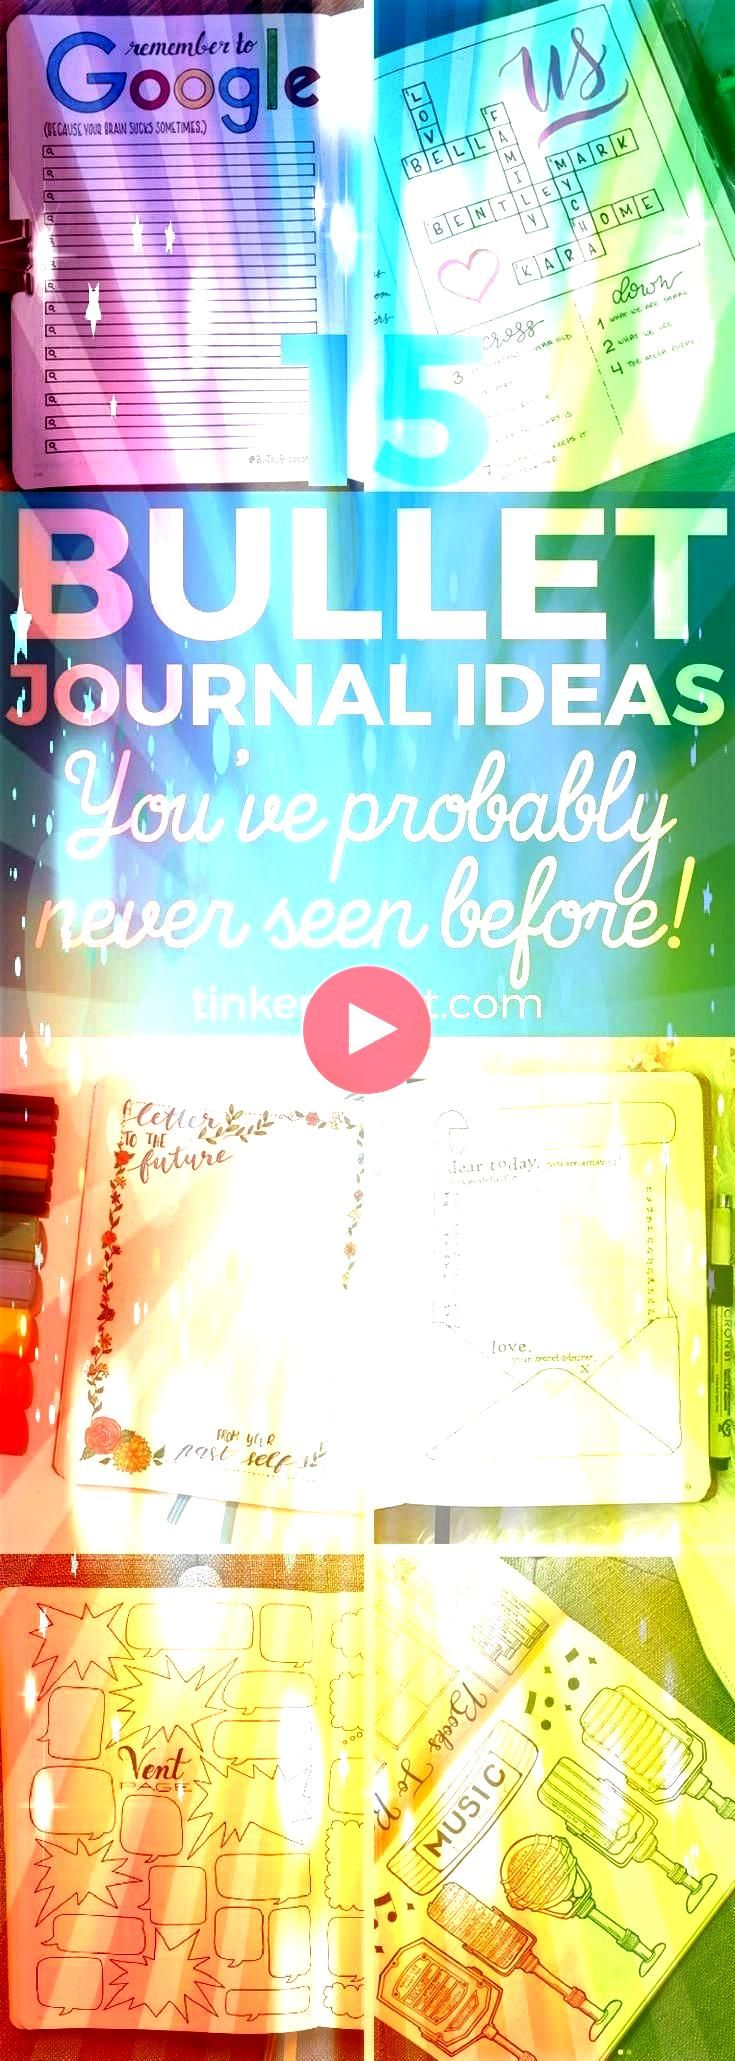 bullet journal ideas are here to inspire you Click through to find These unique bullet journal ideas are here to inspire you Click through to find  These unique bullet jo...